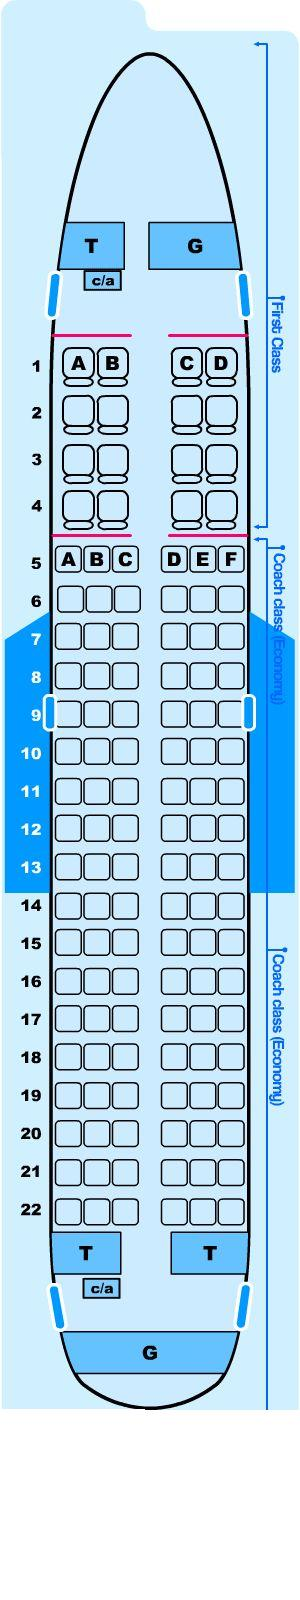 Seat map for Northwest Airlines Airbus A319 100